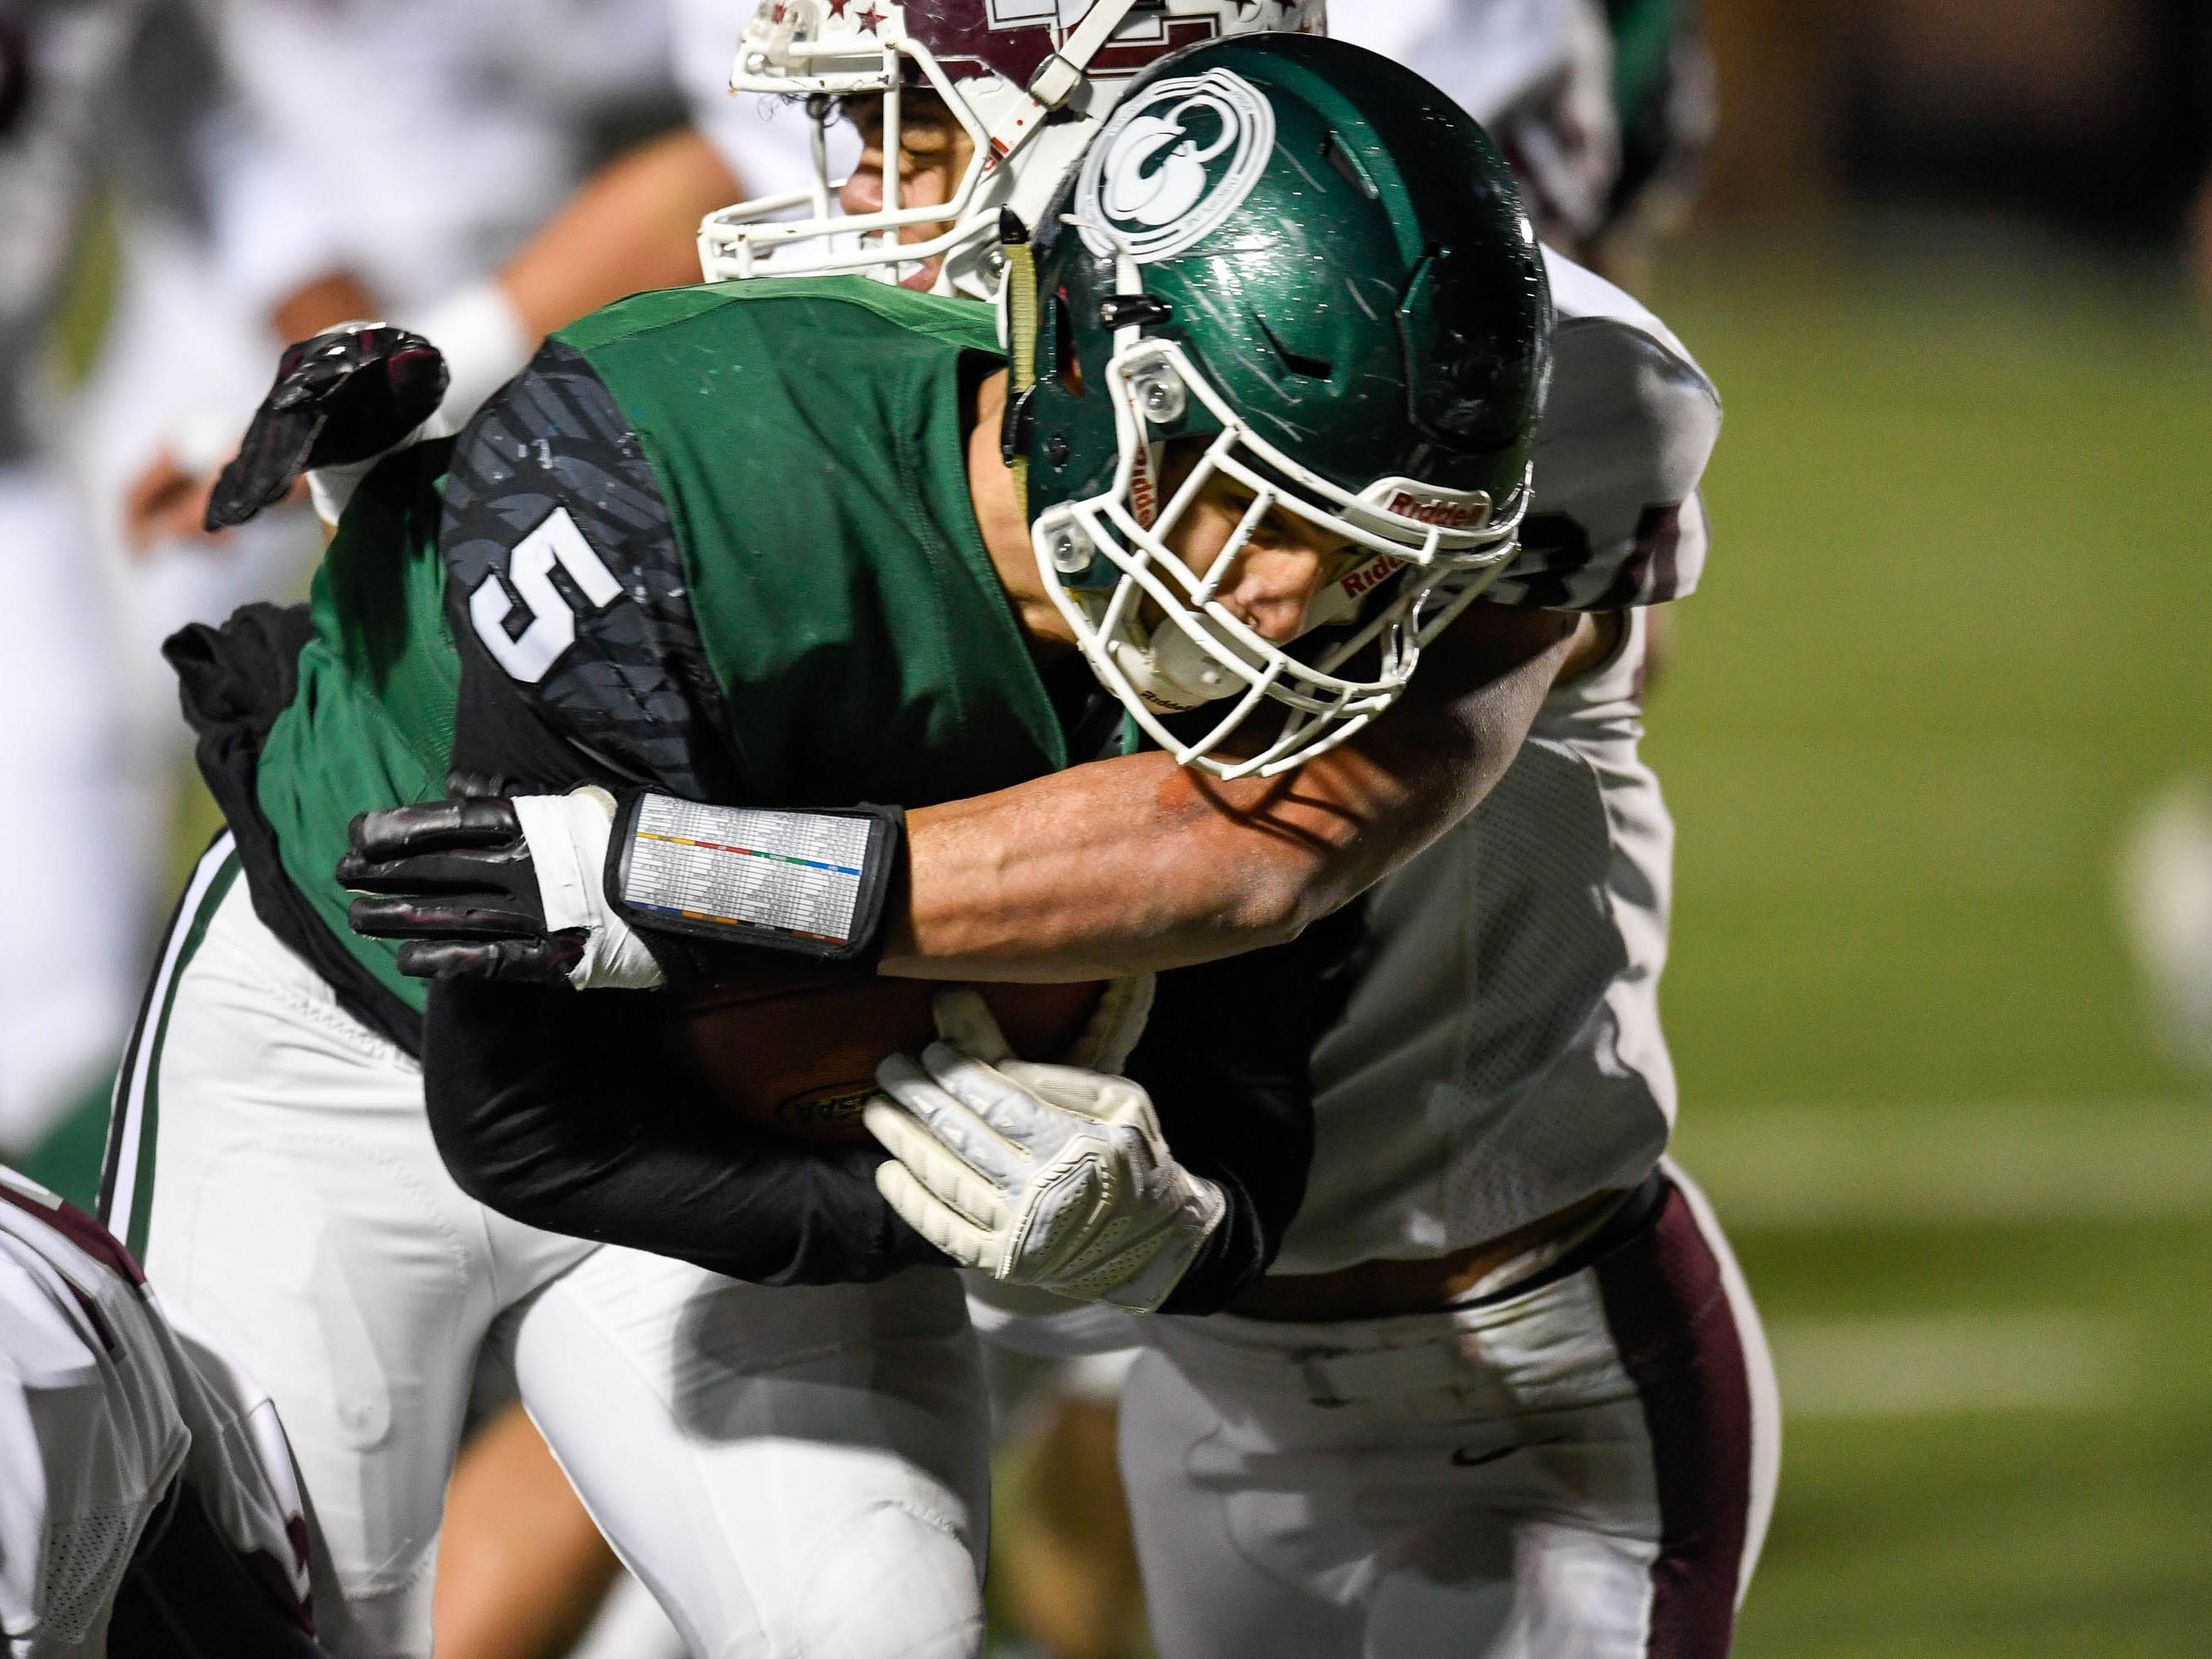 Henderson's Isaiah Fallen (34) wraps up Trinity's Luke McGuire (5) as the Henderson County Colonels play the Trinity Shamrocks in the second round of the Class 6-A football playoffs at Marshall Stadium in Louisville Friday, November 9, 2018.